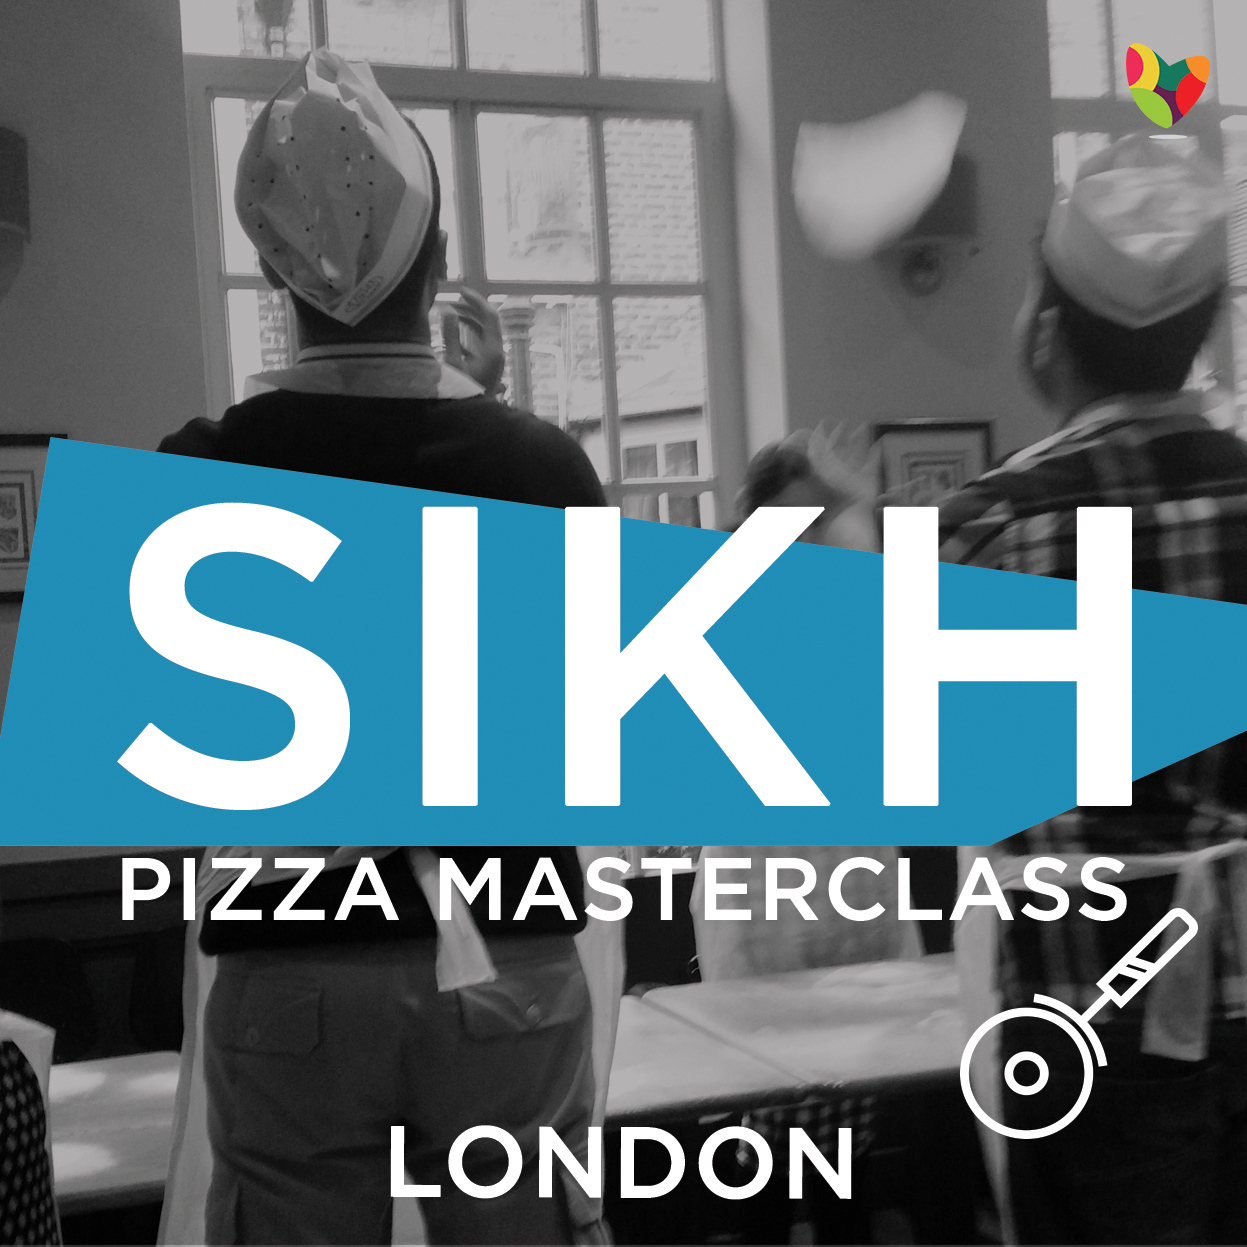 Sikh speed dating london